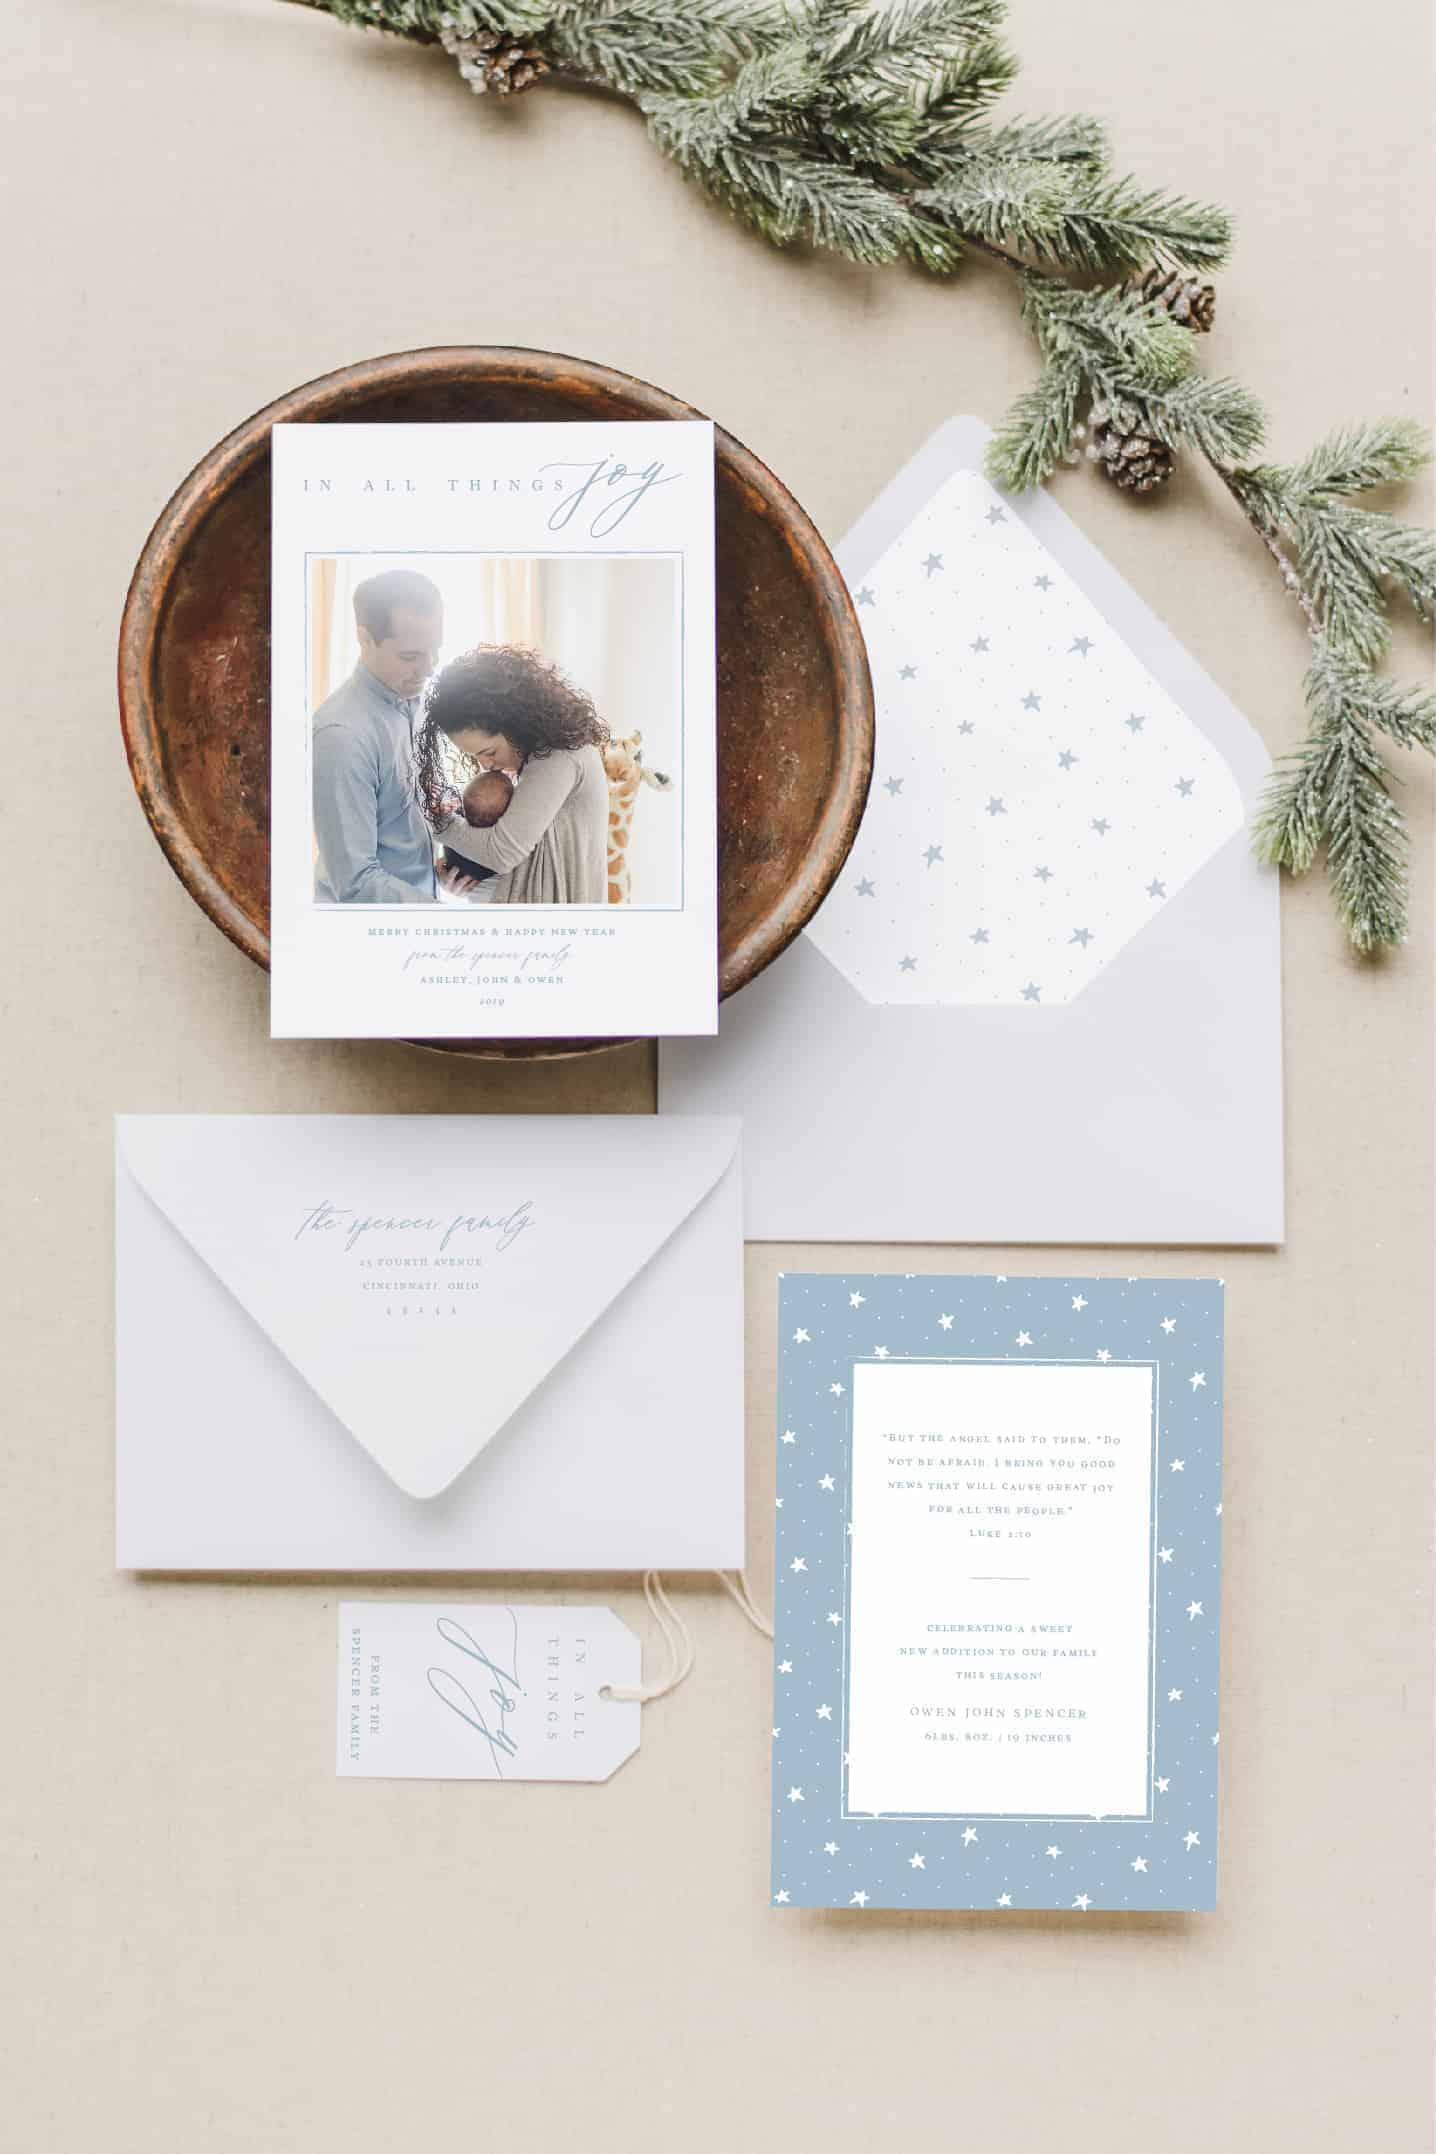 All Things Joy New Baby Christmas Card